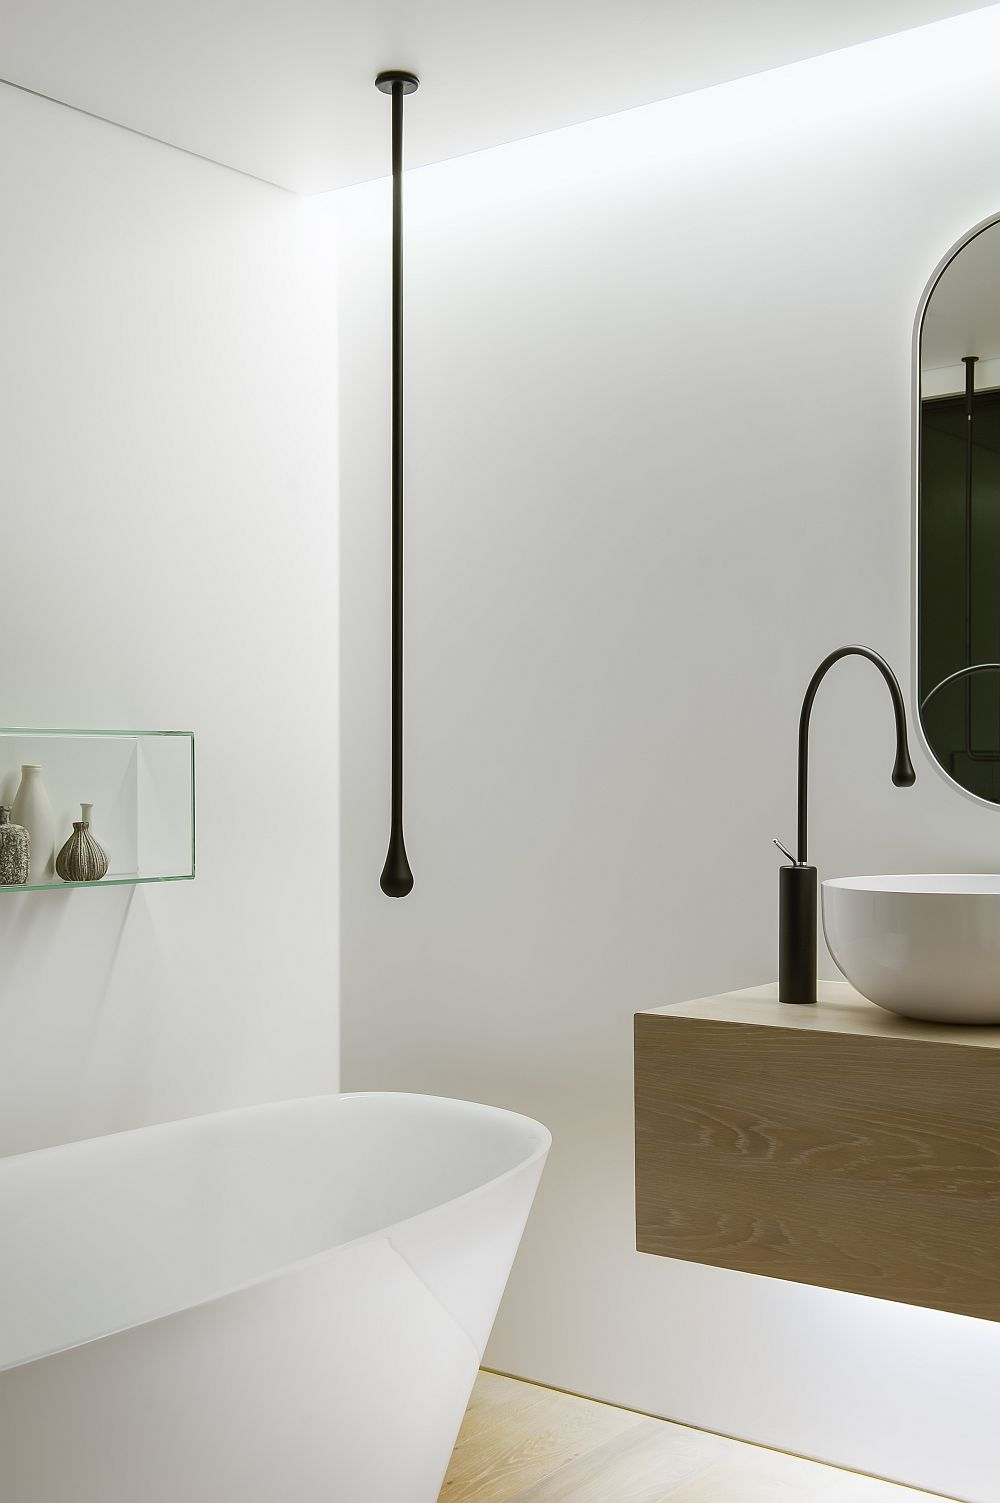 Smart focussed lighting in the bathroom